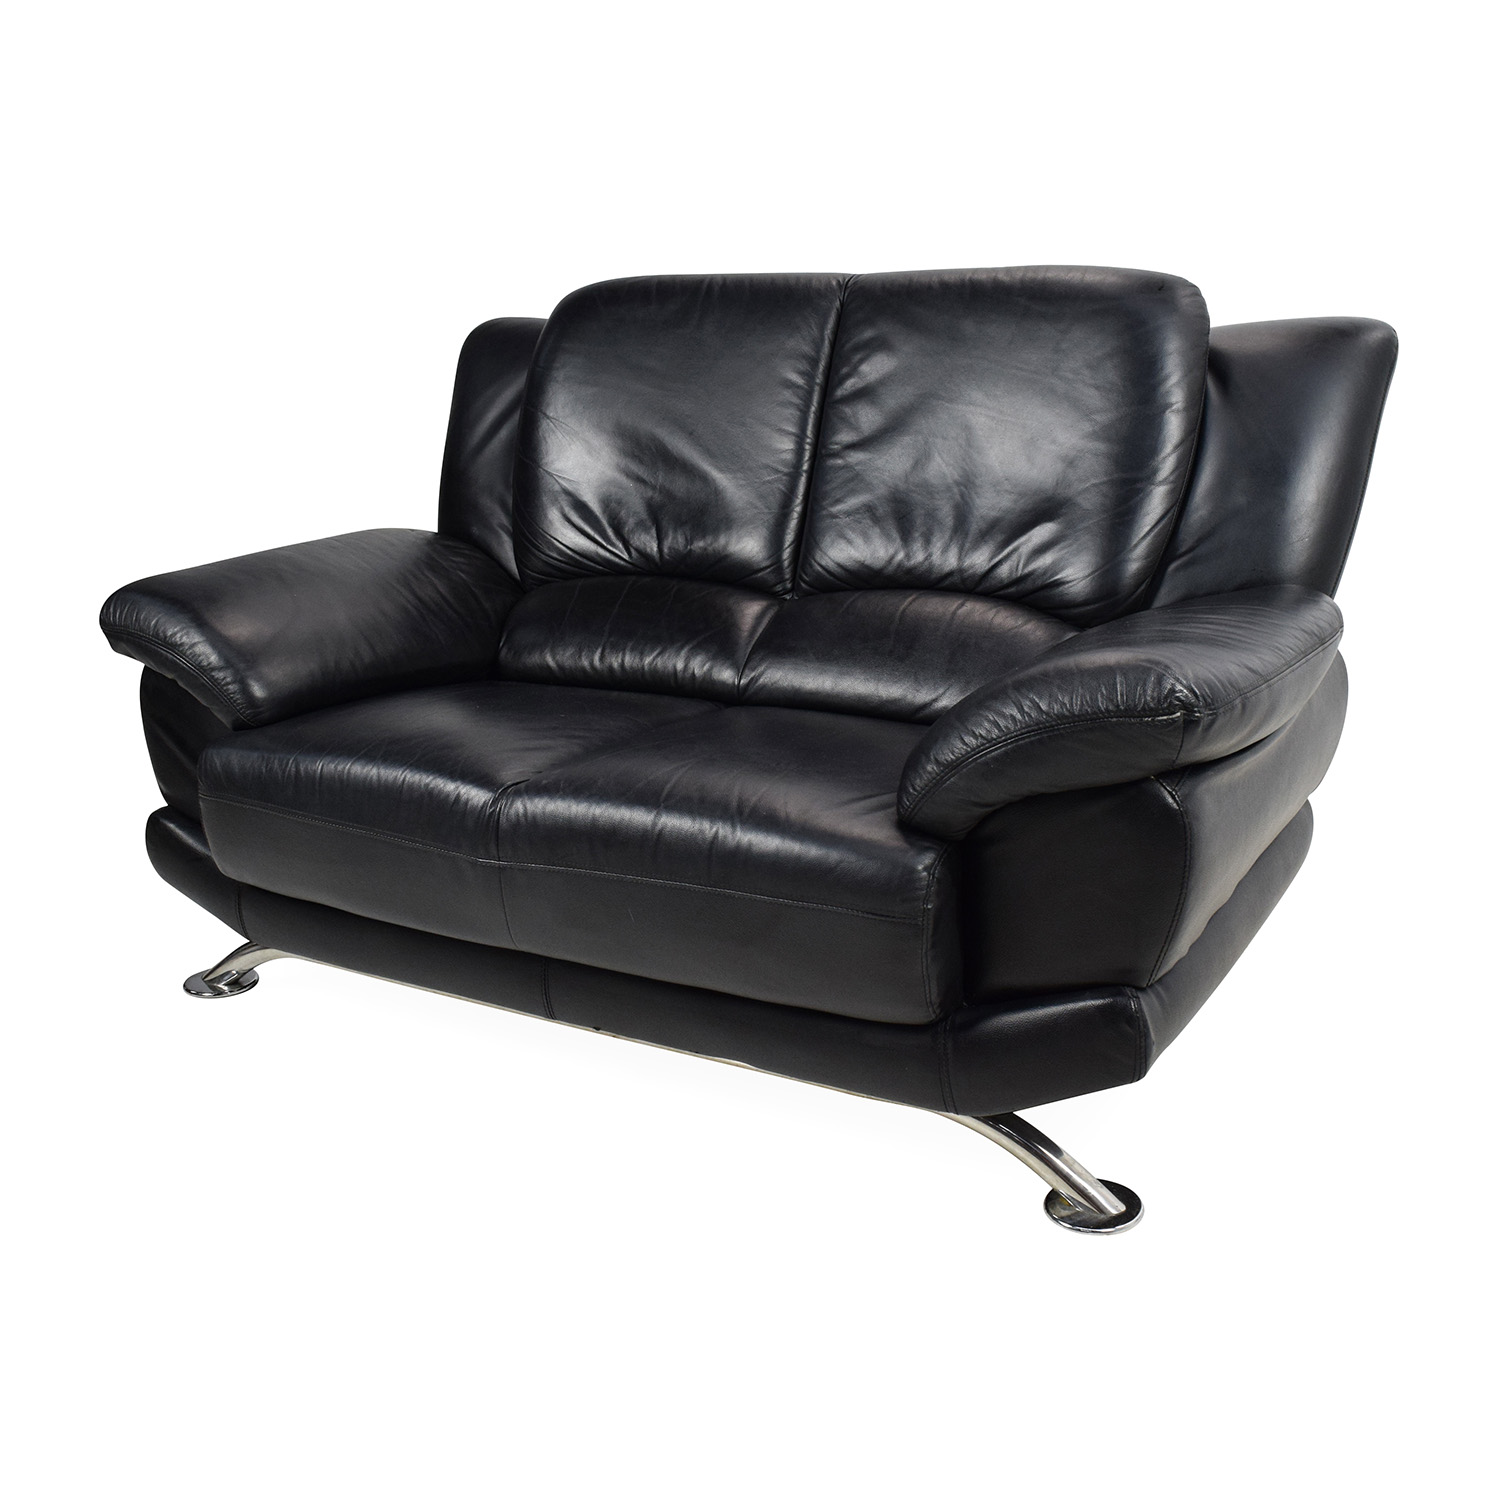 65 Off Custom Black Leather Loveseat Sofas